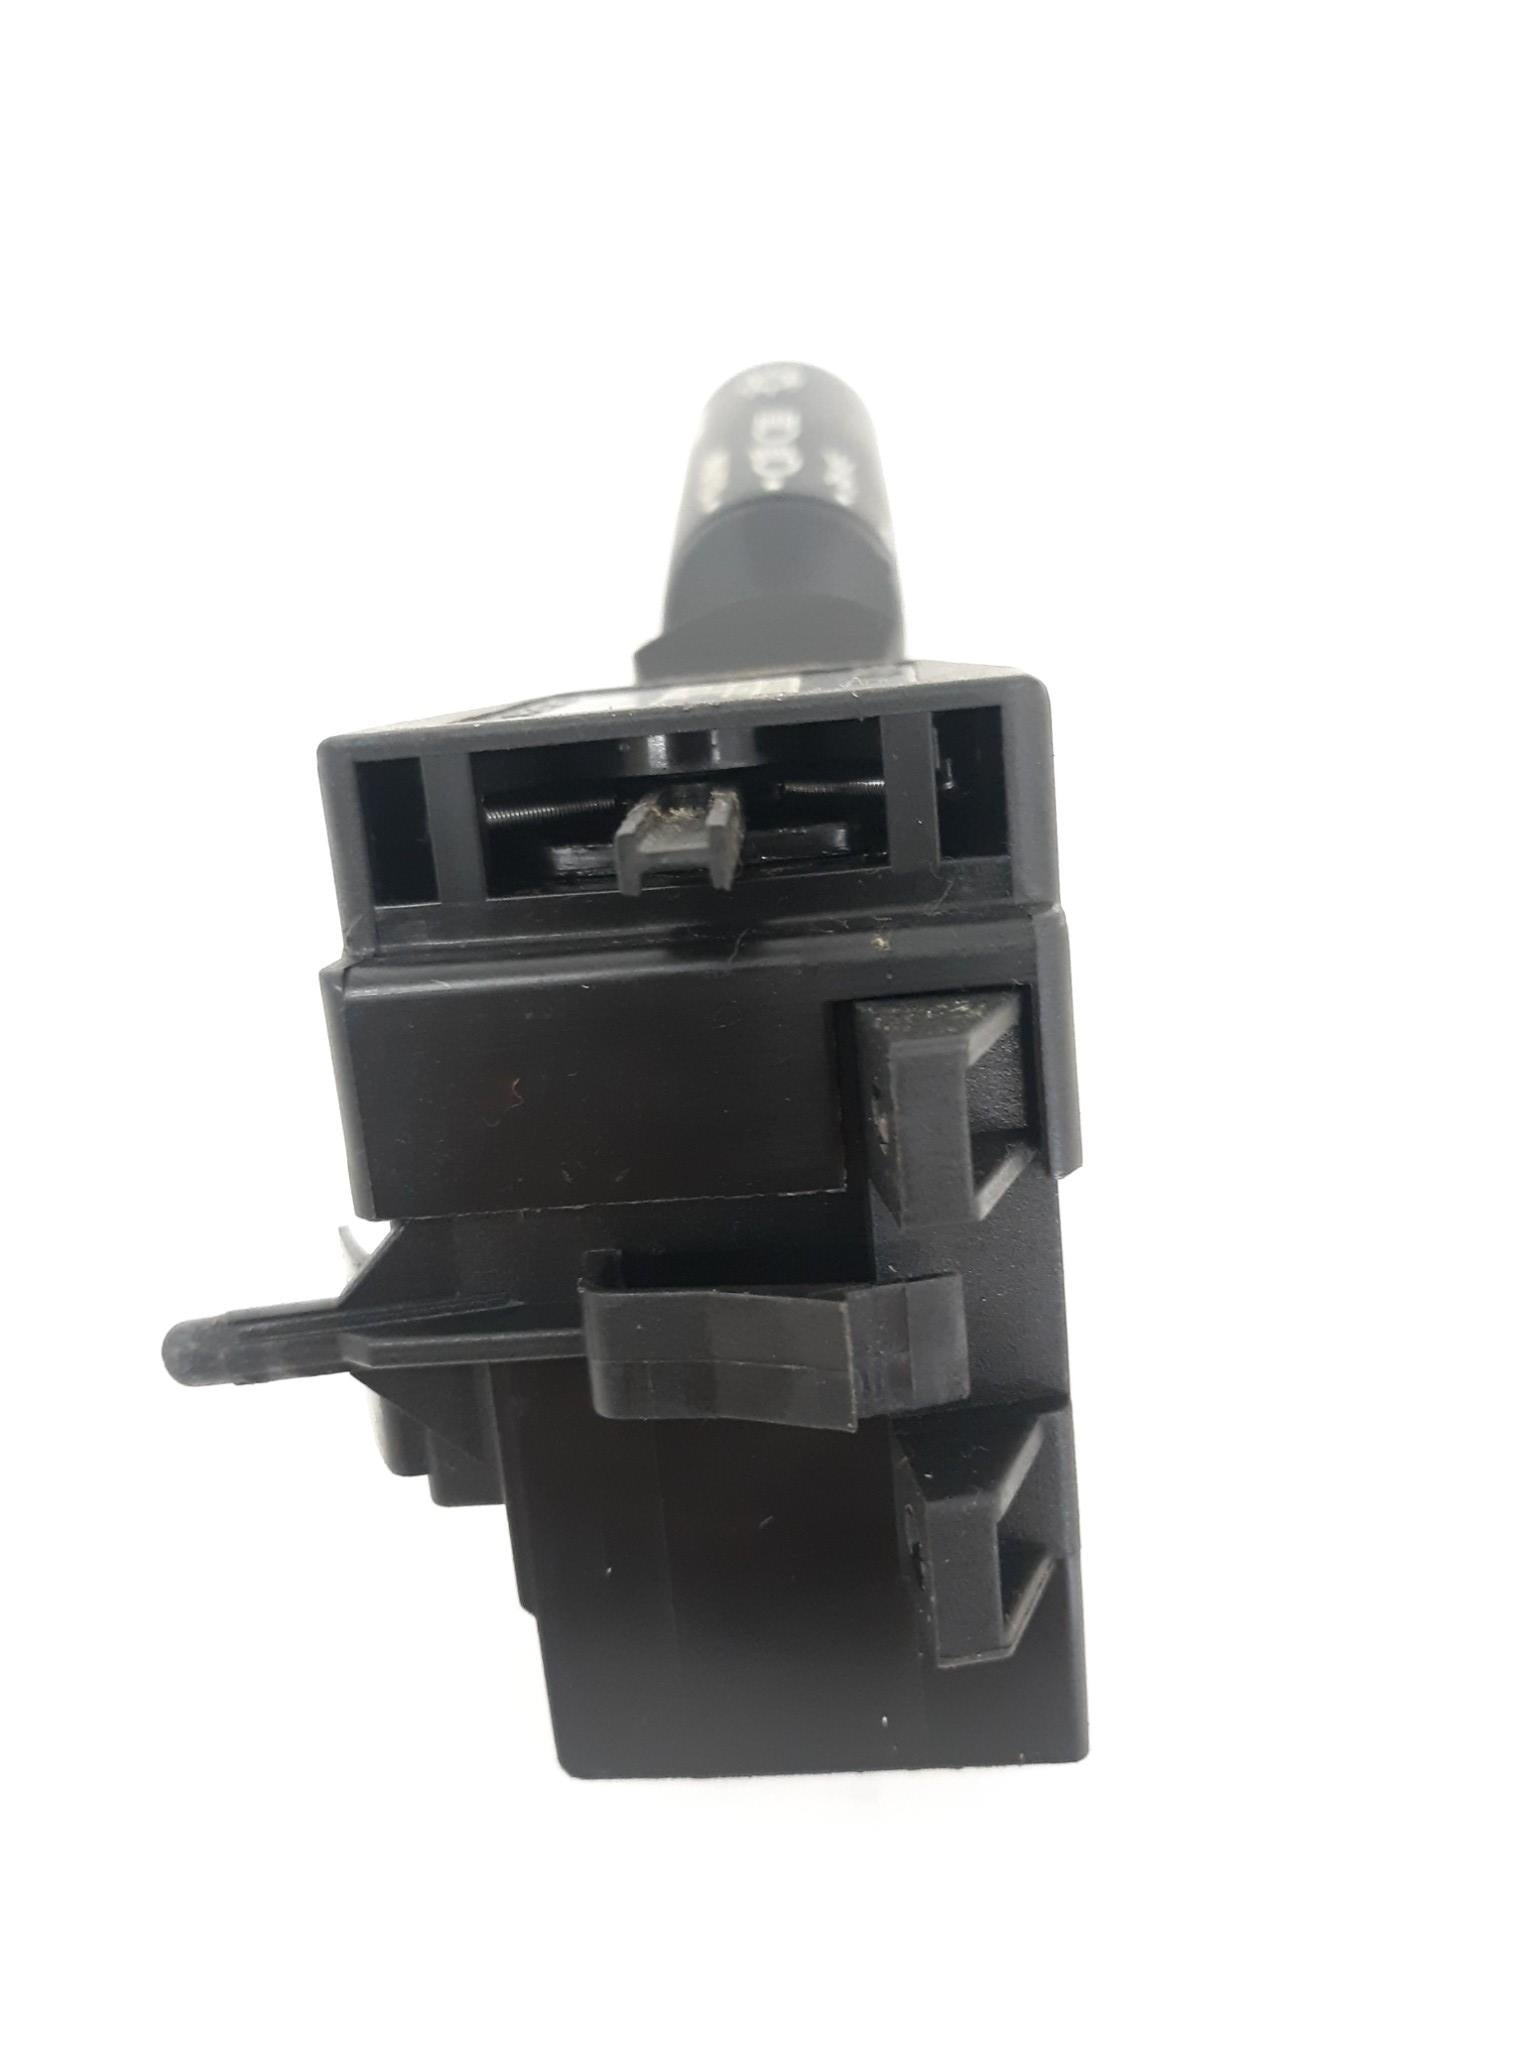 2008-15 SMART STEERING COLUMN HEADLIGHT TURN LIGHT SWITCH OEM PN: A4515450210 - Click Receive Auto Parts